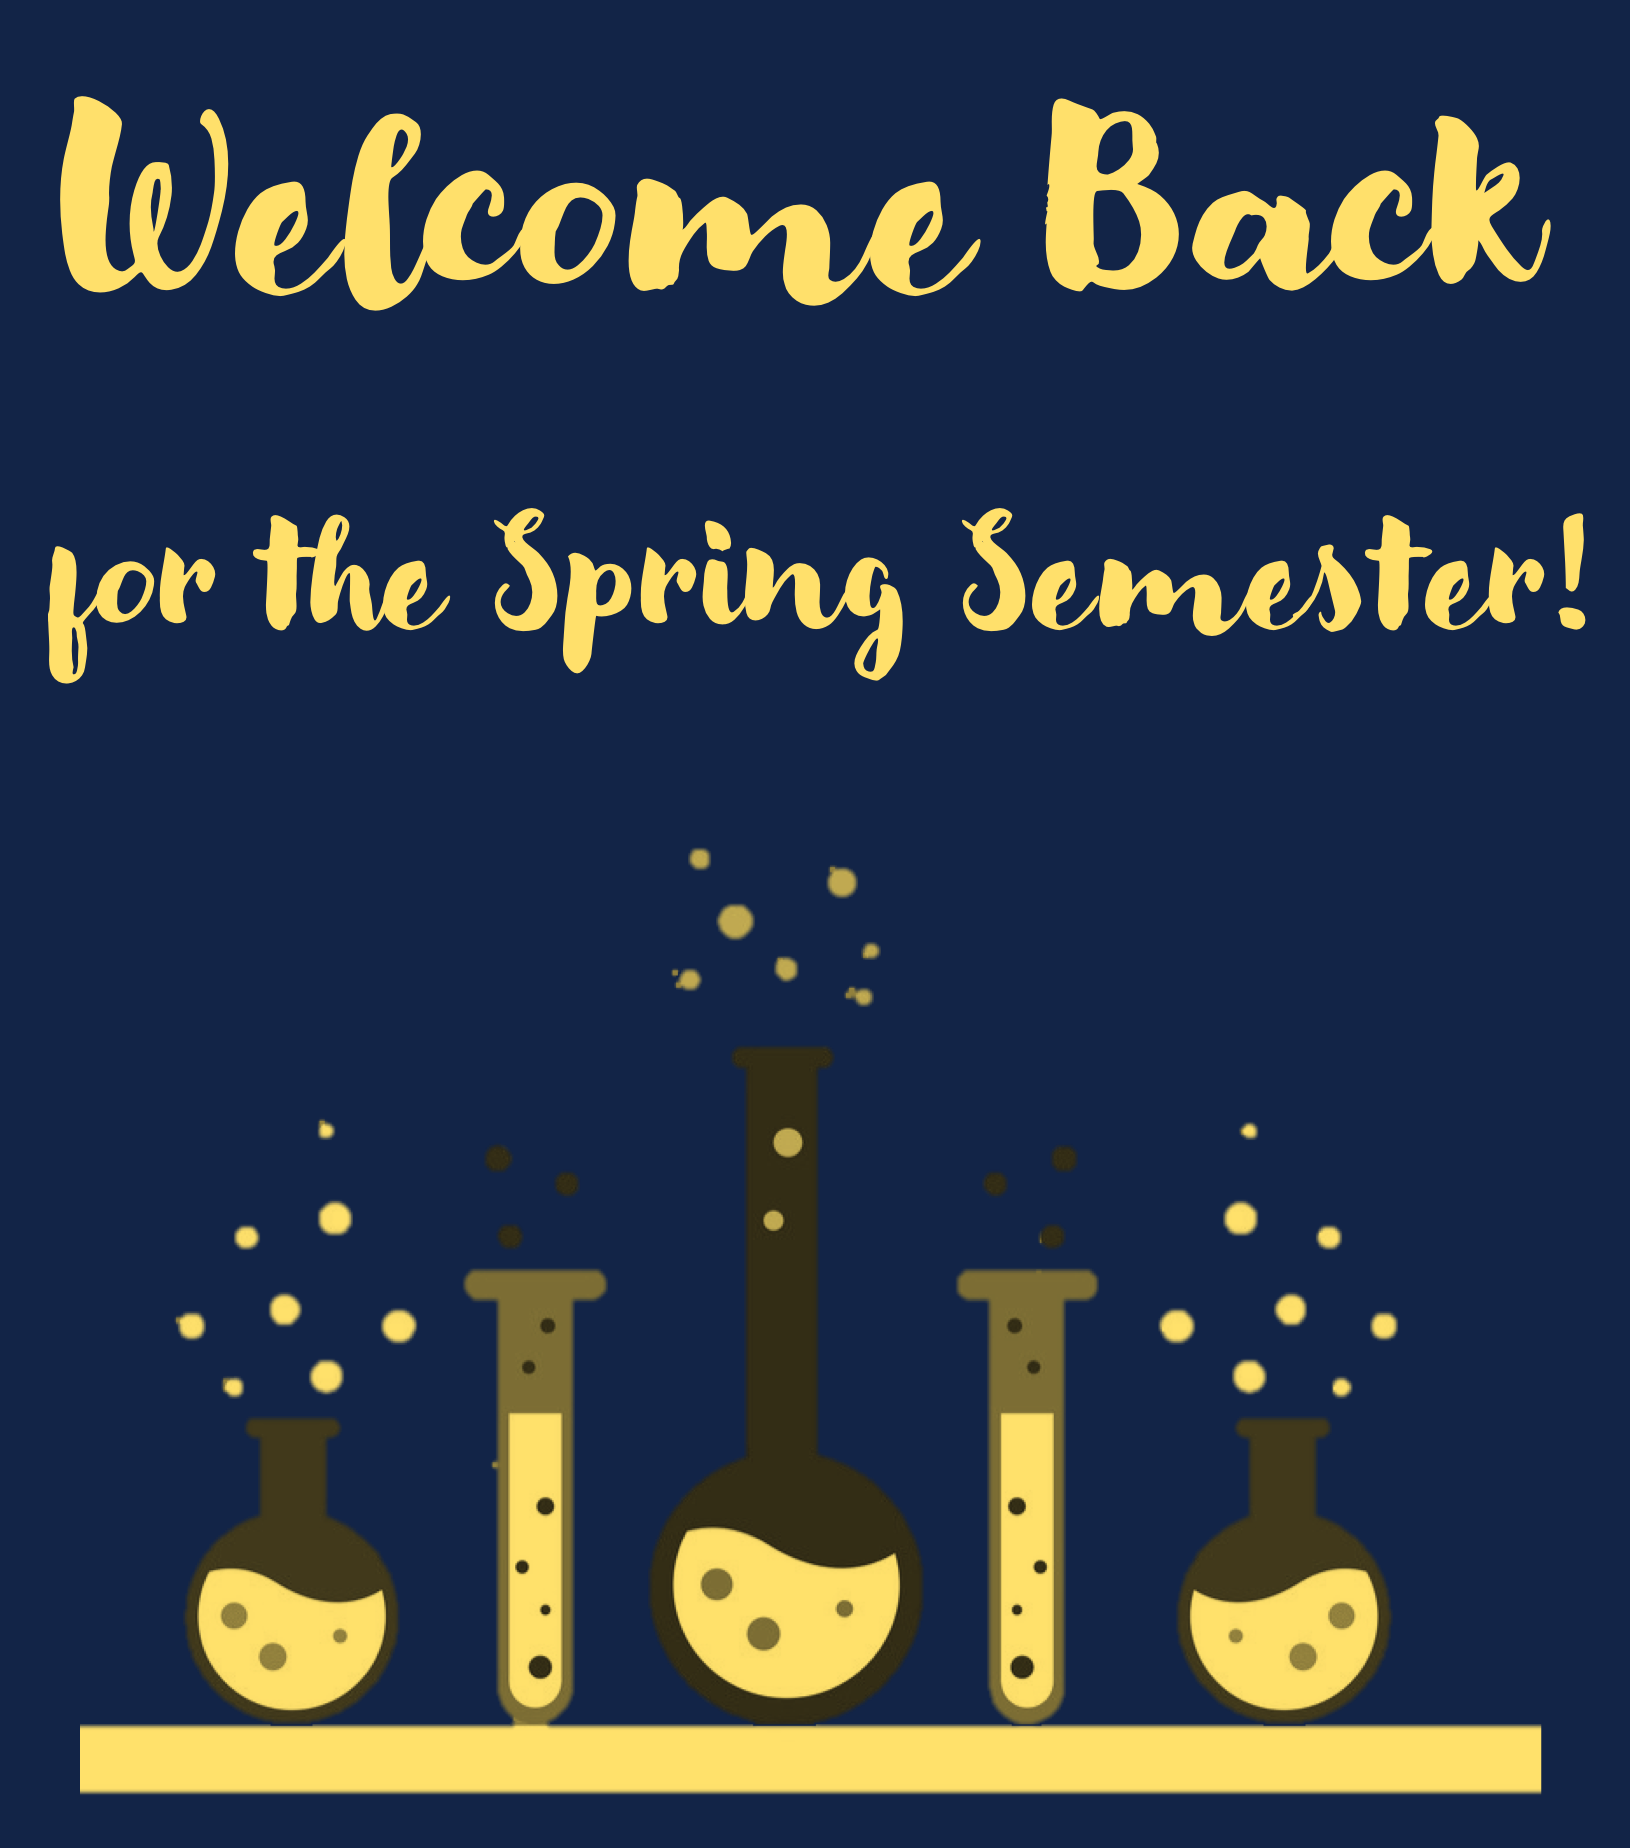 Welcome Back for the Spring Semester!